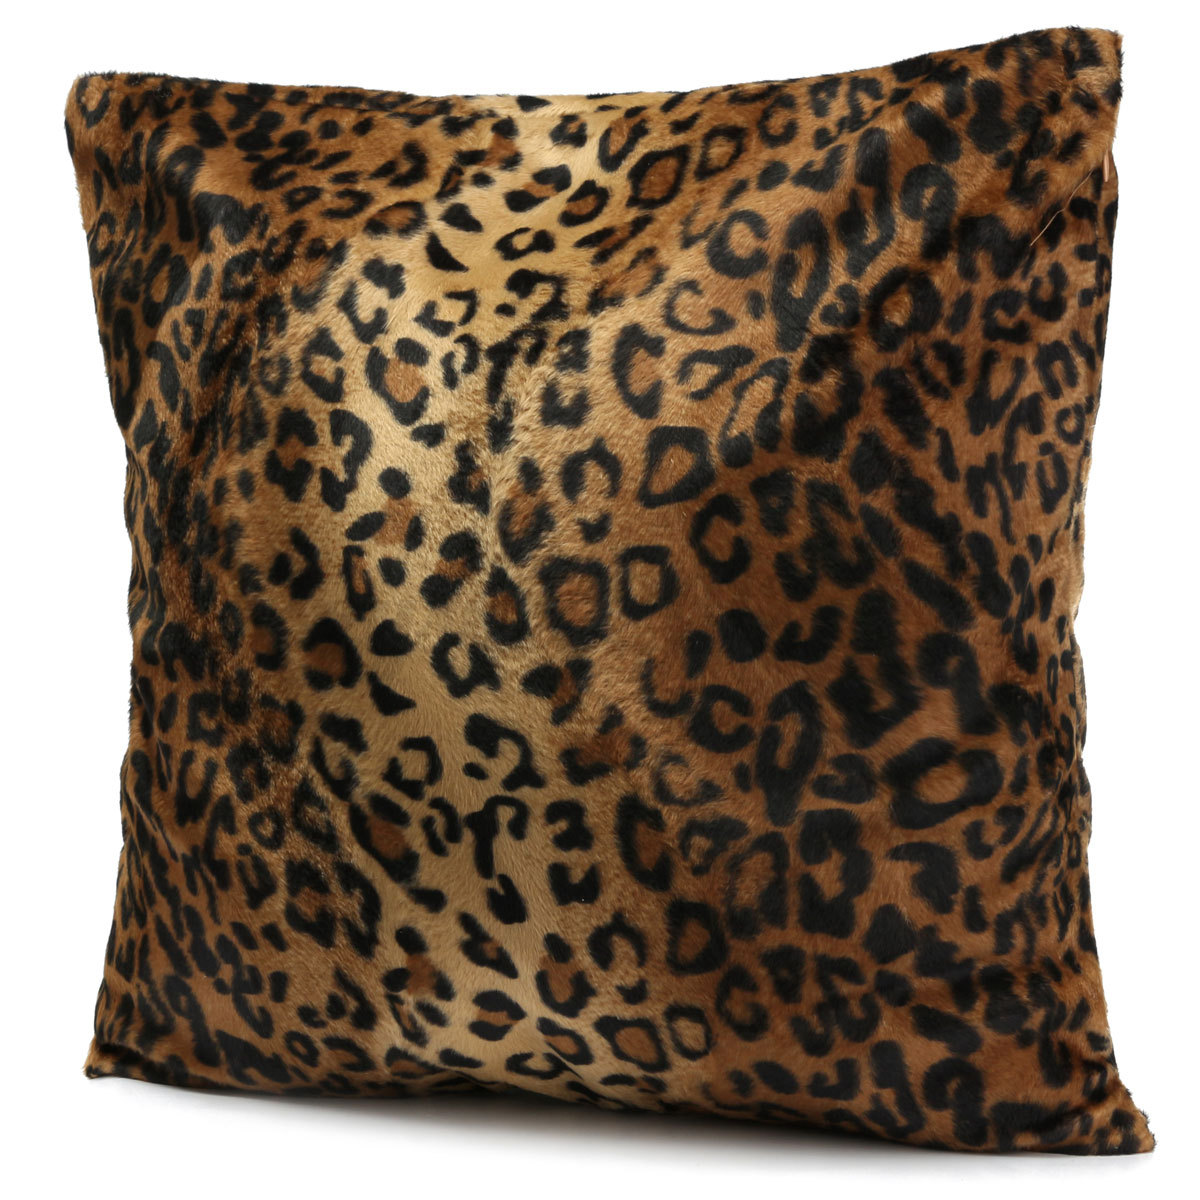 Animal Print Pillows For Couch : Animal Zebra Leopard Print Pillow Case Sofa Waist Throw Cushion Cover Home Decor